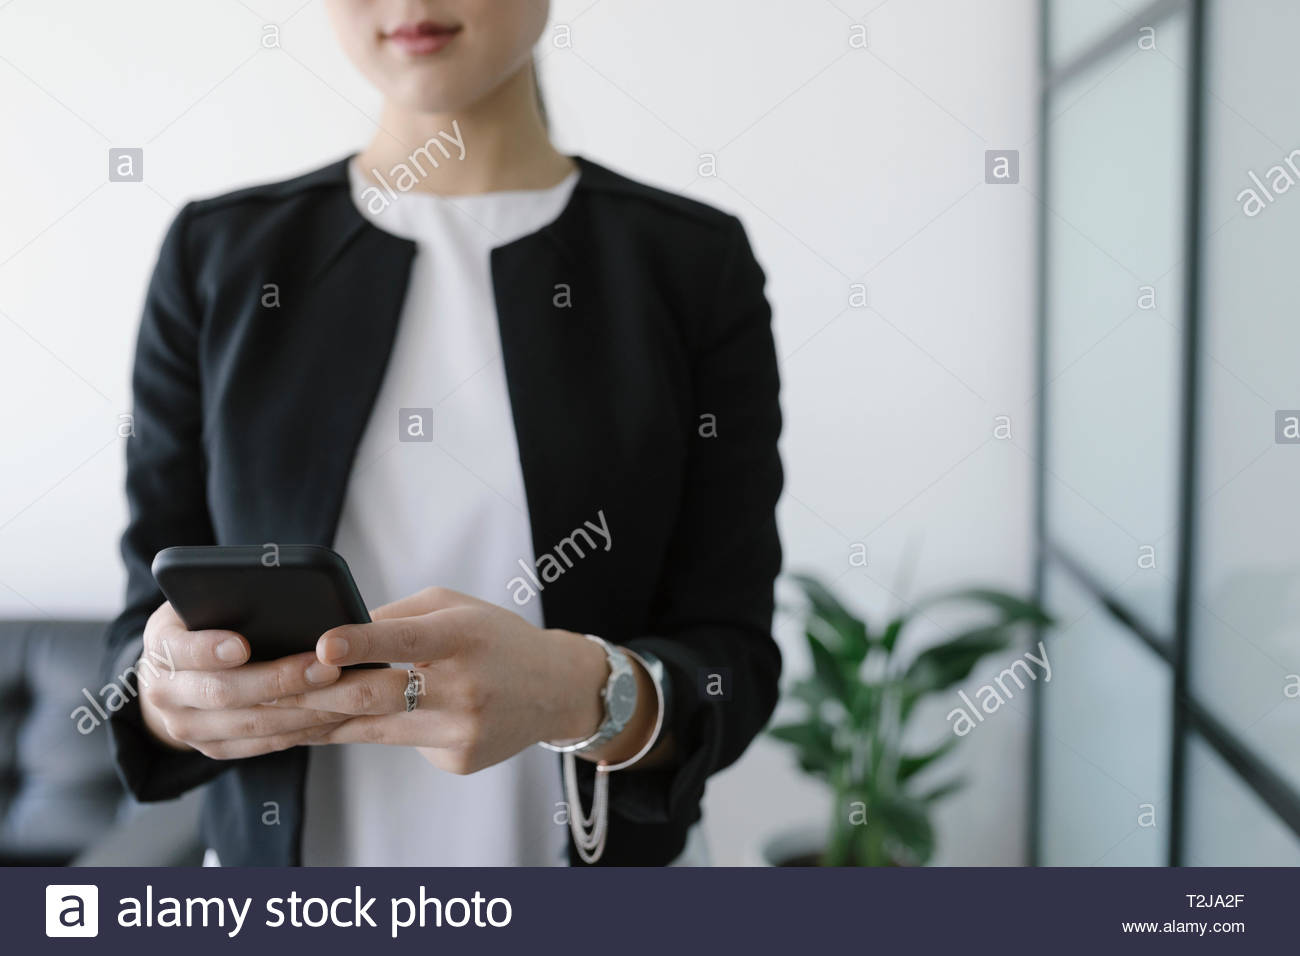 Businesswoman using smart phone in office Photo Stock